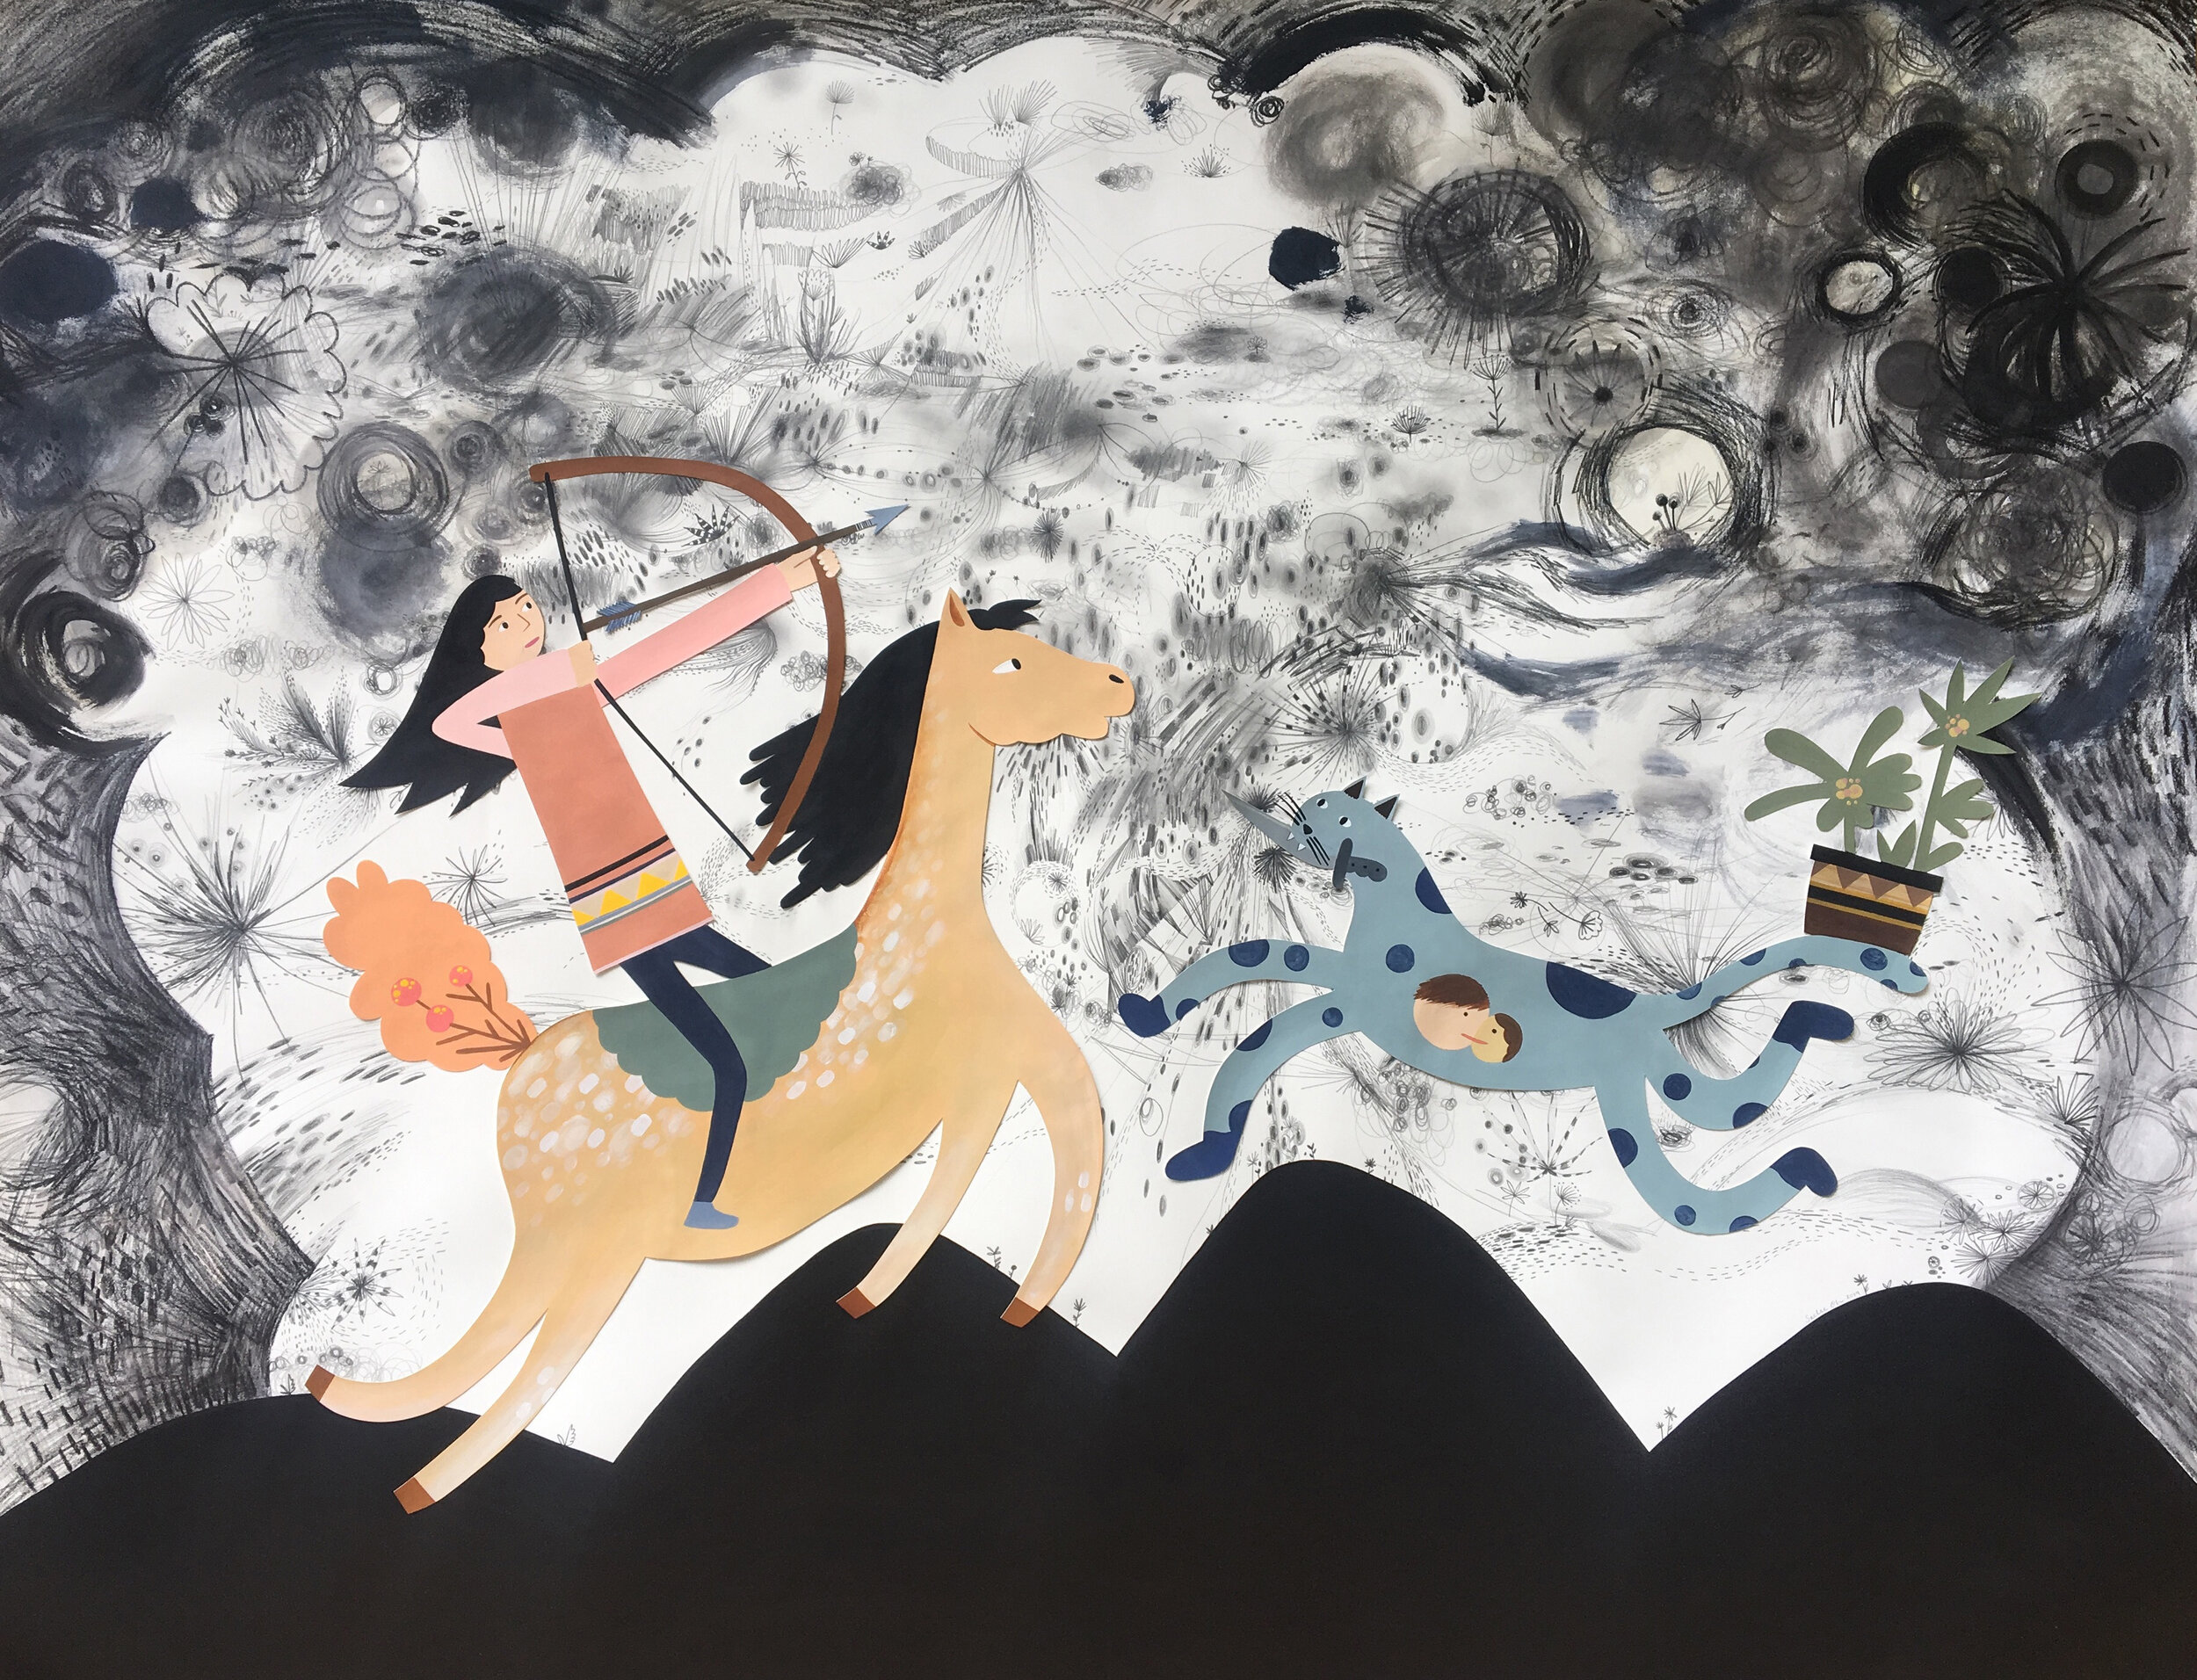 Warrior Huntress  - 2019, acrylic, gouache, graphite, watercolor pencil on paper, 55 x 70 inches unframed, 60 x 75 inches framed